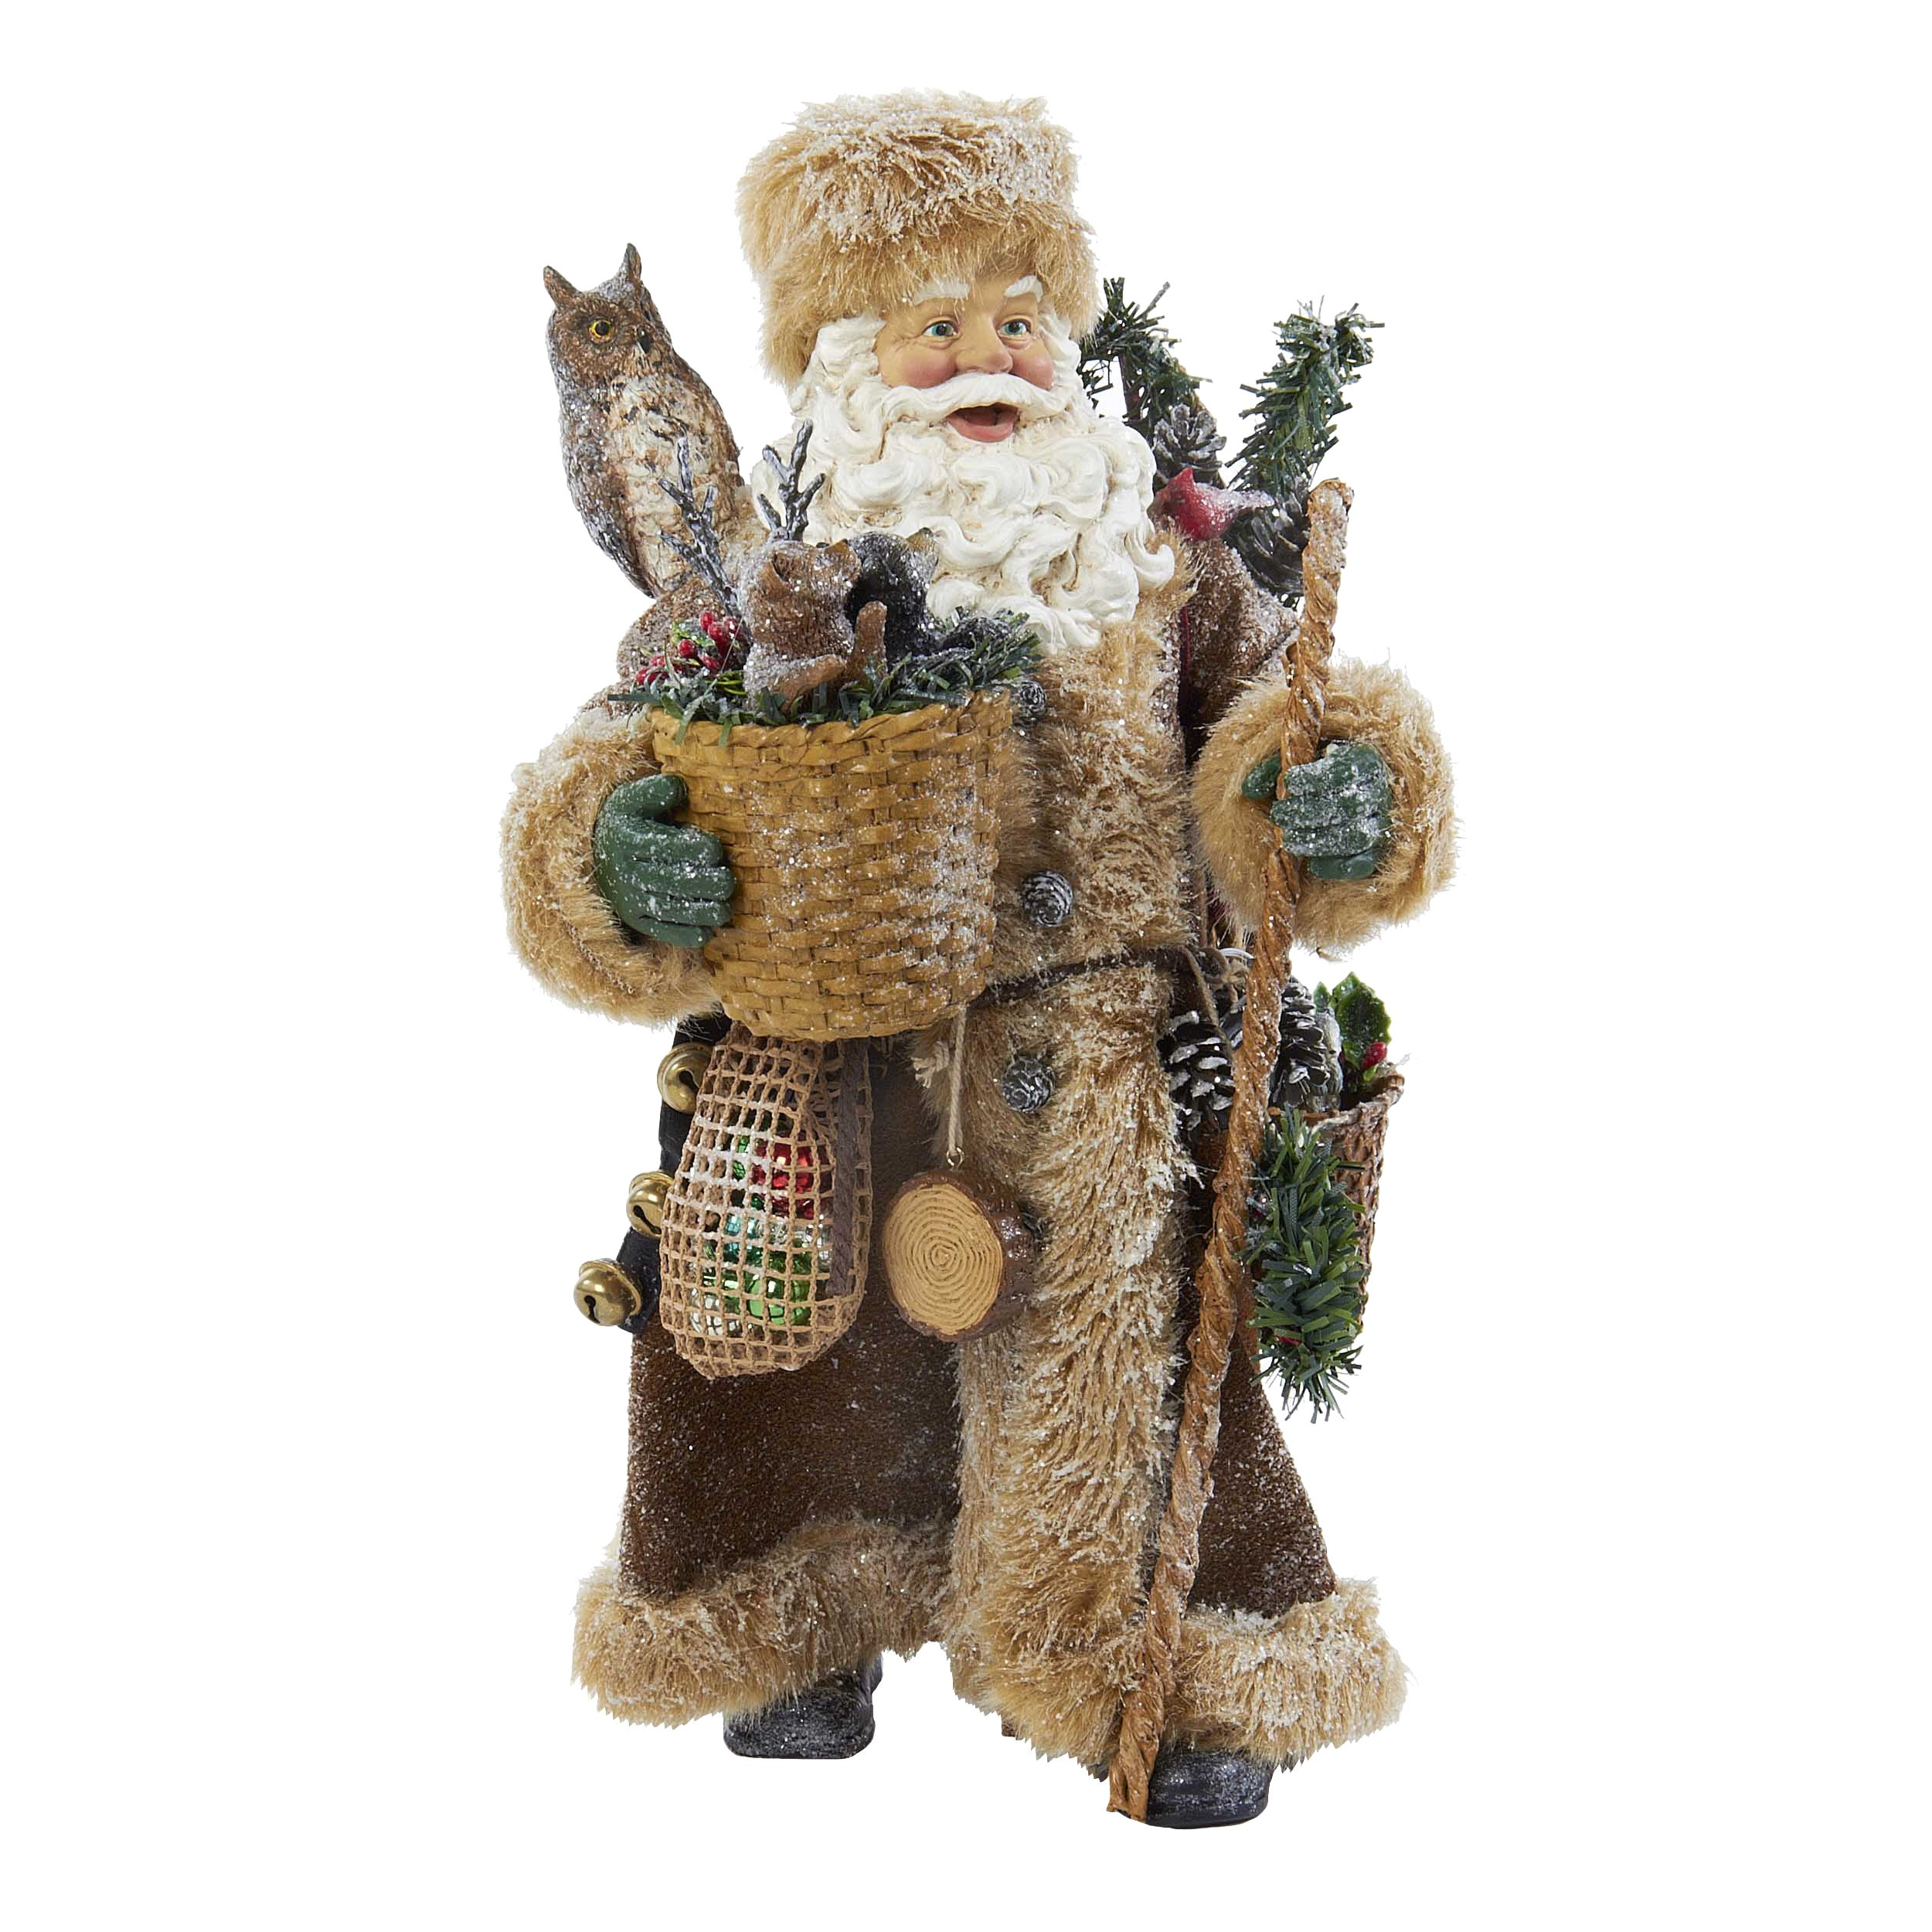 santas go ornament product scenic the on of decorative decor goodies santa s bag